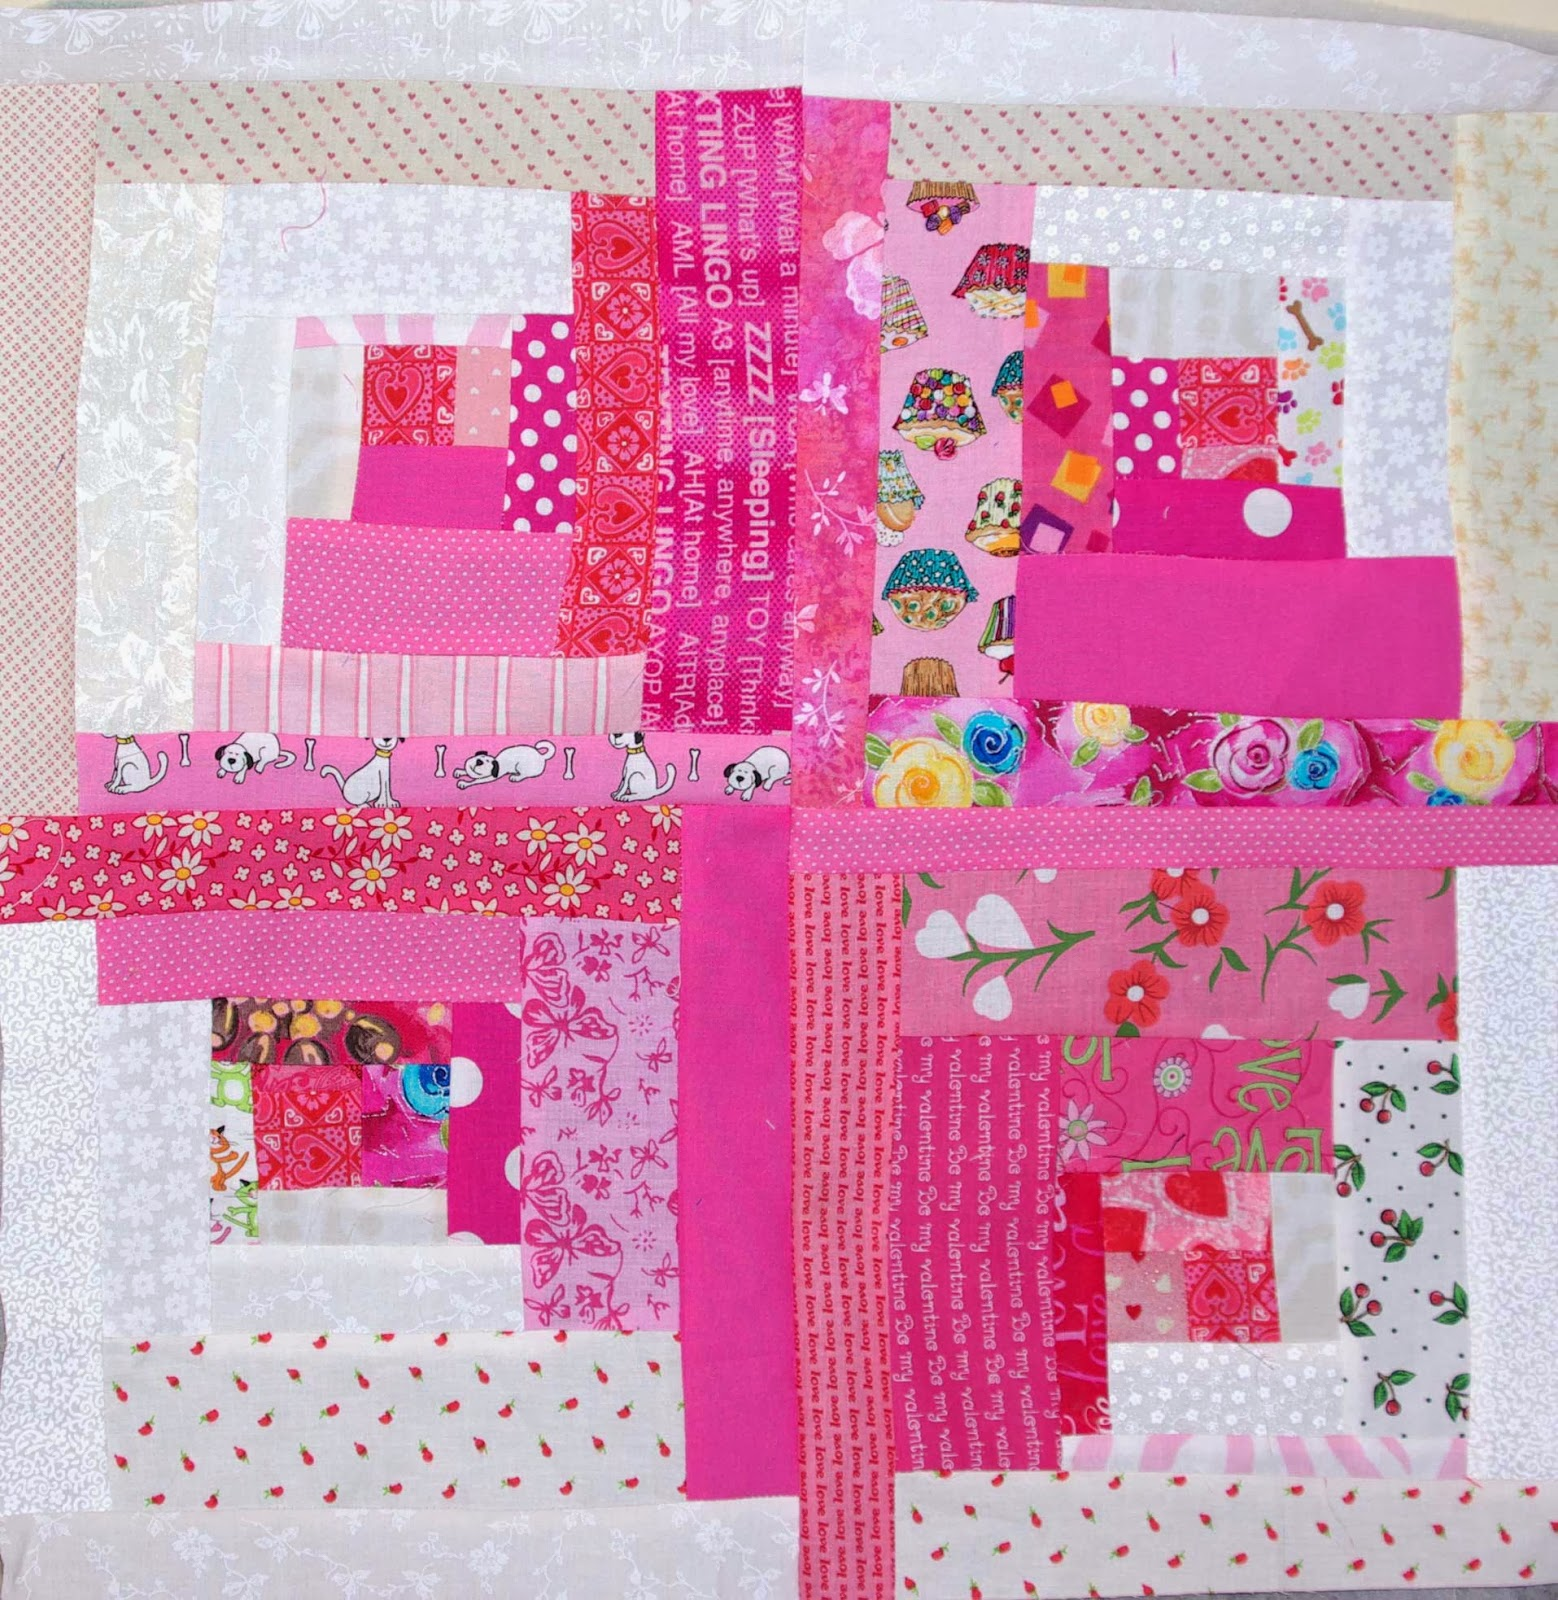 Very Impressive portraiture of Sane Crazy Crumby Quilting: From Whence Did These Pink Scraps Come? with #B01B38 color and 1558x1600 pixels